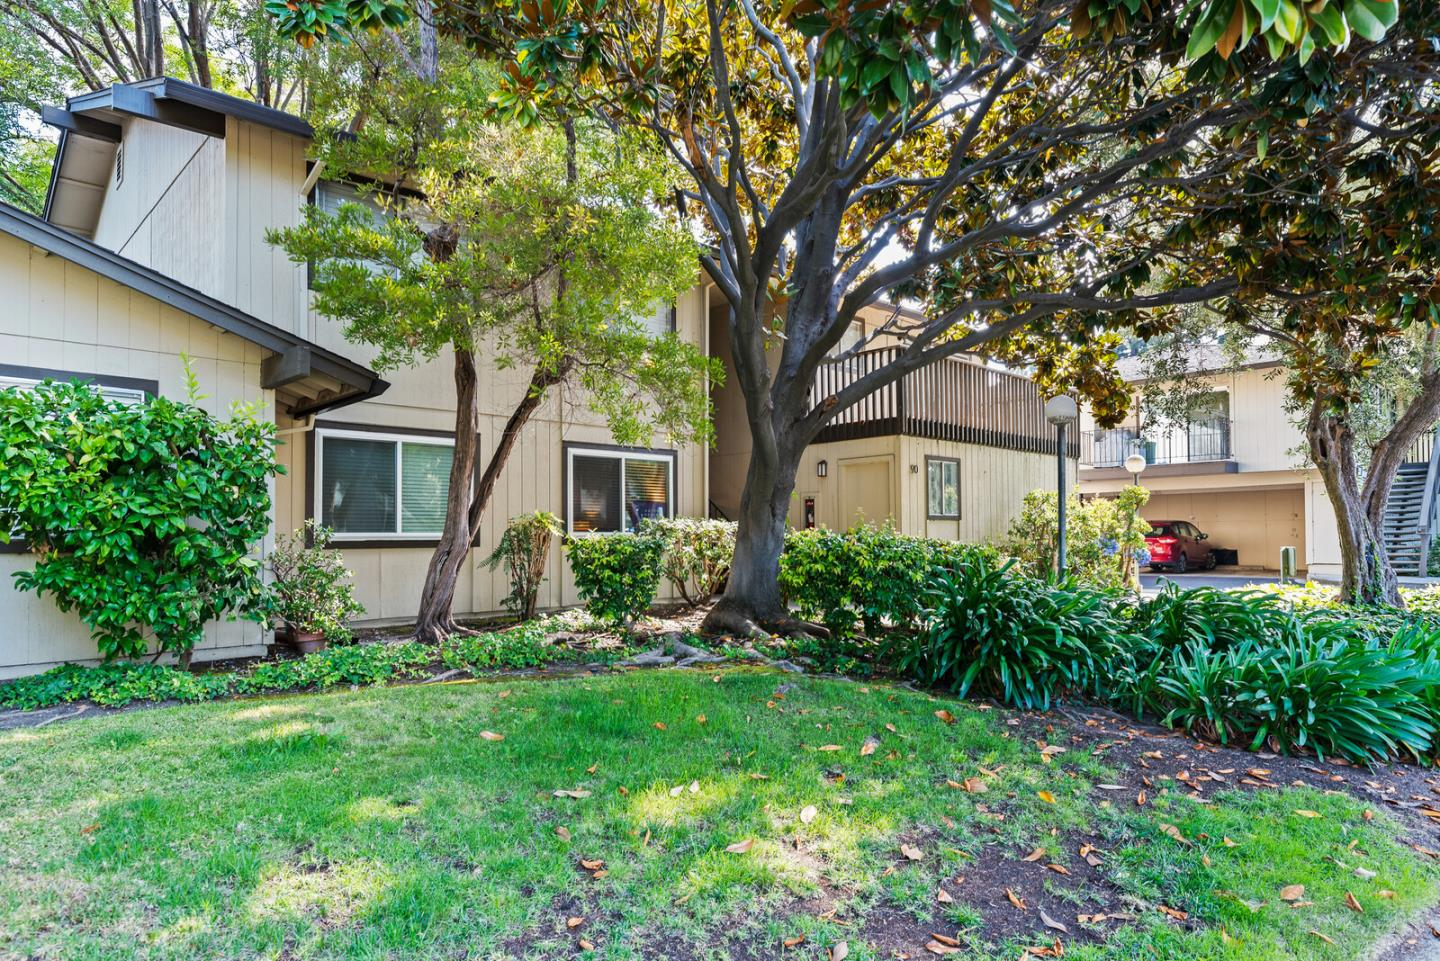 Enjoy the best of indoor/outdoor living in the heart of Silicon Valley with this cozy ground- floor condo with huge private patio. Located just minutes from downtown Mountain View, this home has easy access to highways 101, 237 and 85 and is also within striking distance of the Google satellite office, NASA, the light rail, numerous walking and bike trails and much more! The property is part of a well-run HOA with low dues, clubhouse, heated pool, playground and lots of green spaces. Everything you need to live a comfortable lifestyle is all within reach of this great home! This property is a must see!  Virtual Open House 8/30 from 1pm  - 3pm Zoom meeting ID 84986870114